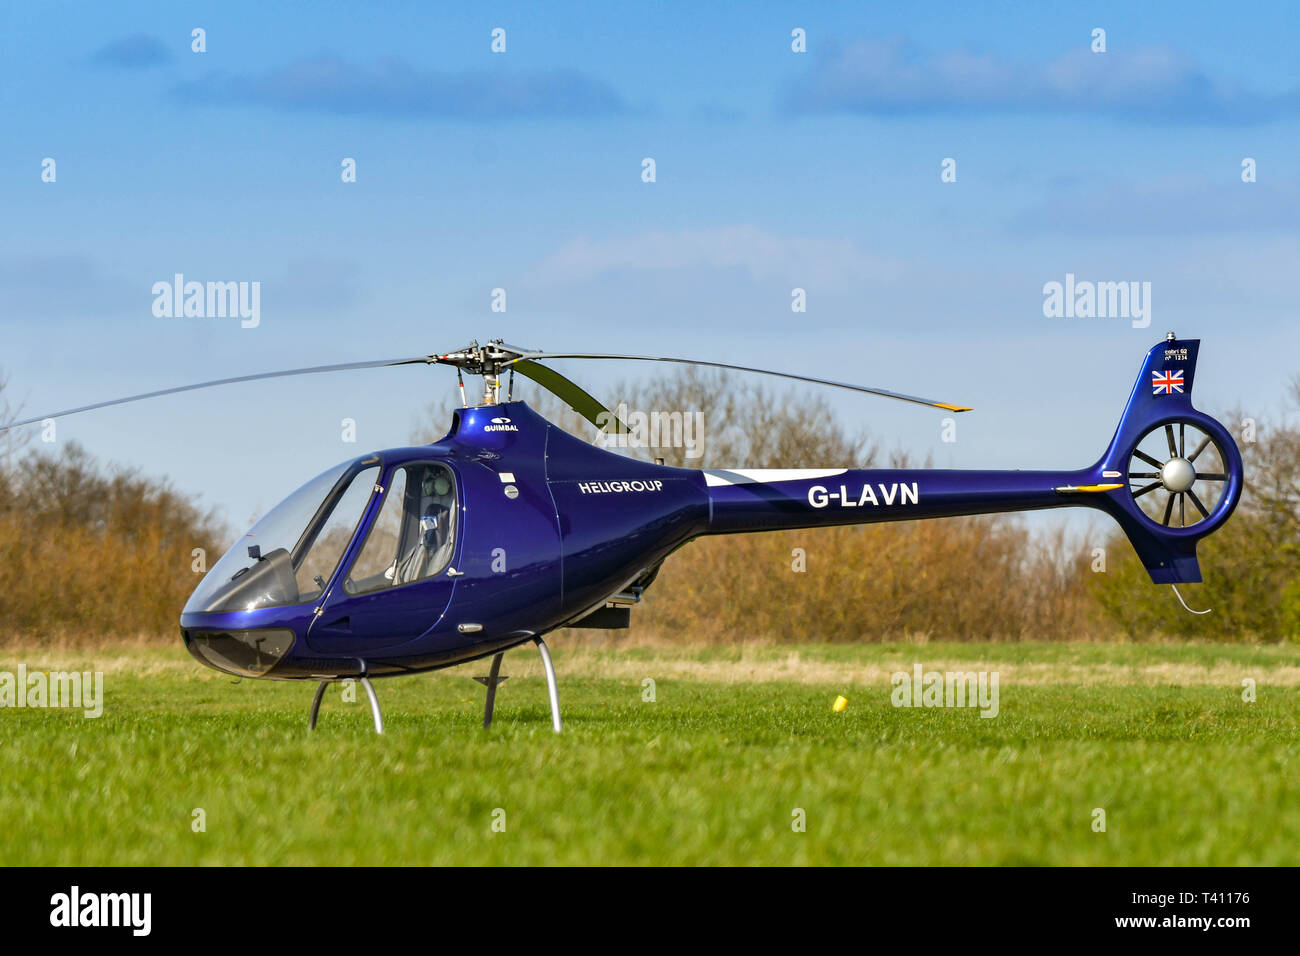 HIGH WYCOMBE, ENGLAND - MARCH 2019: Guimbal Cabri G2 helicopter on the ground at Wycombe Air Park. - Stock Image